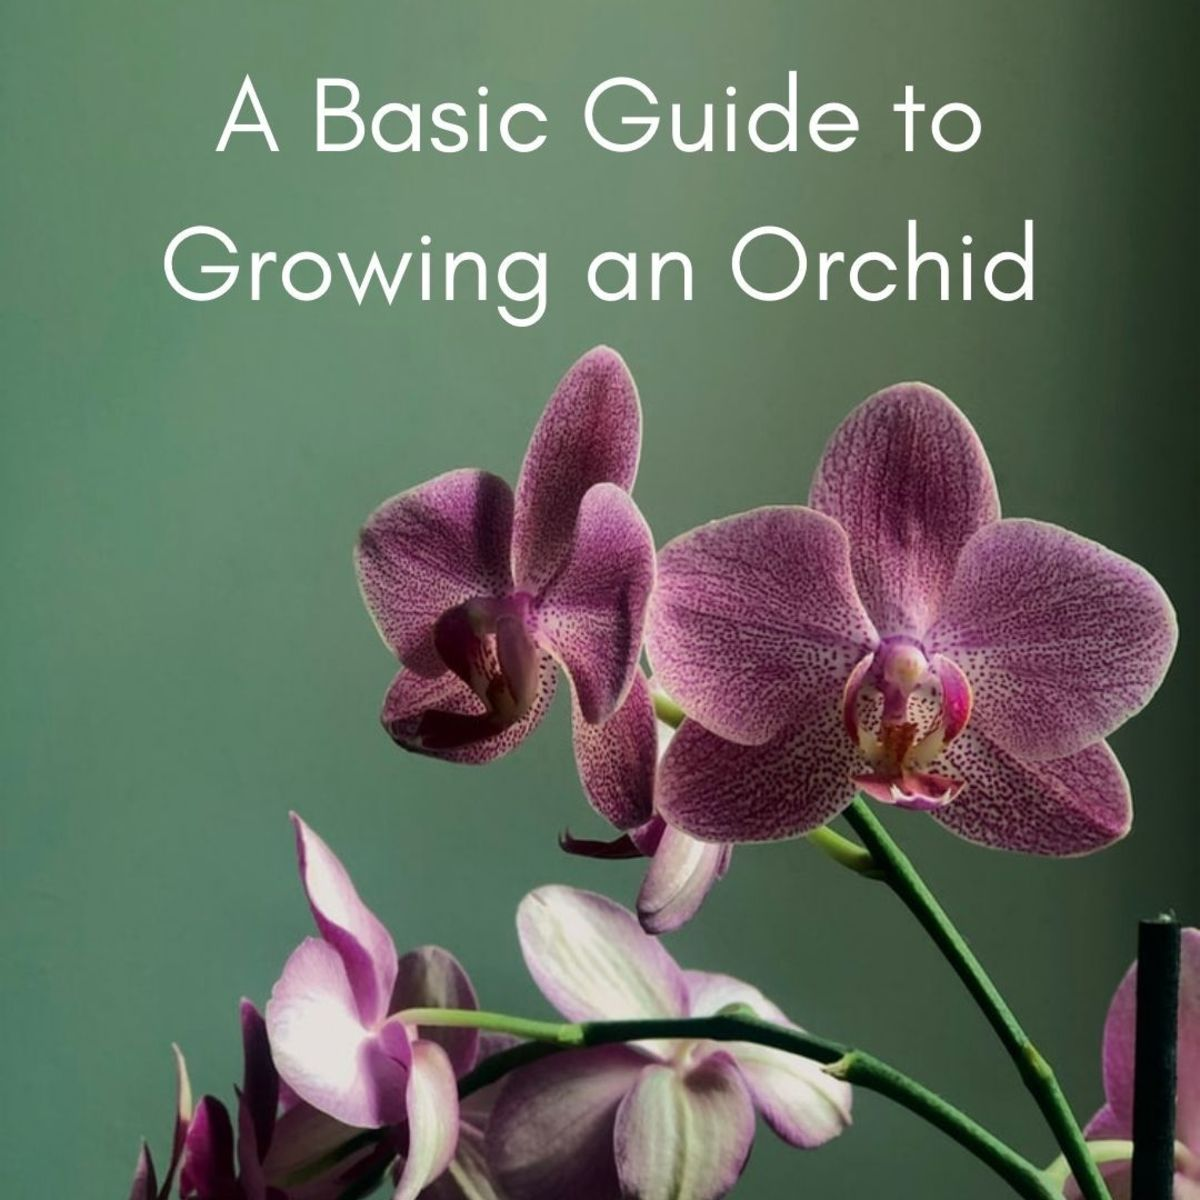 Orchids are relatively simple to grow indoors; you'll just need to know where to locate your plant and maintain water levels.